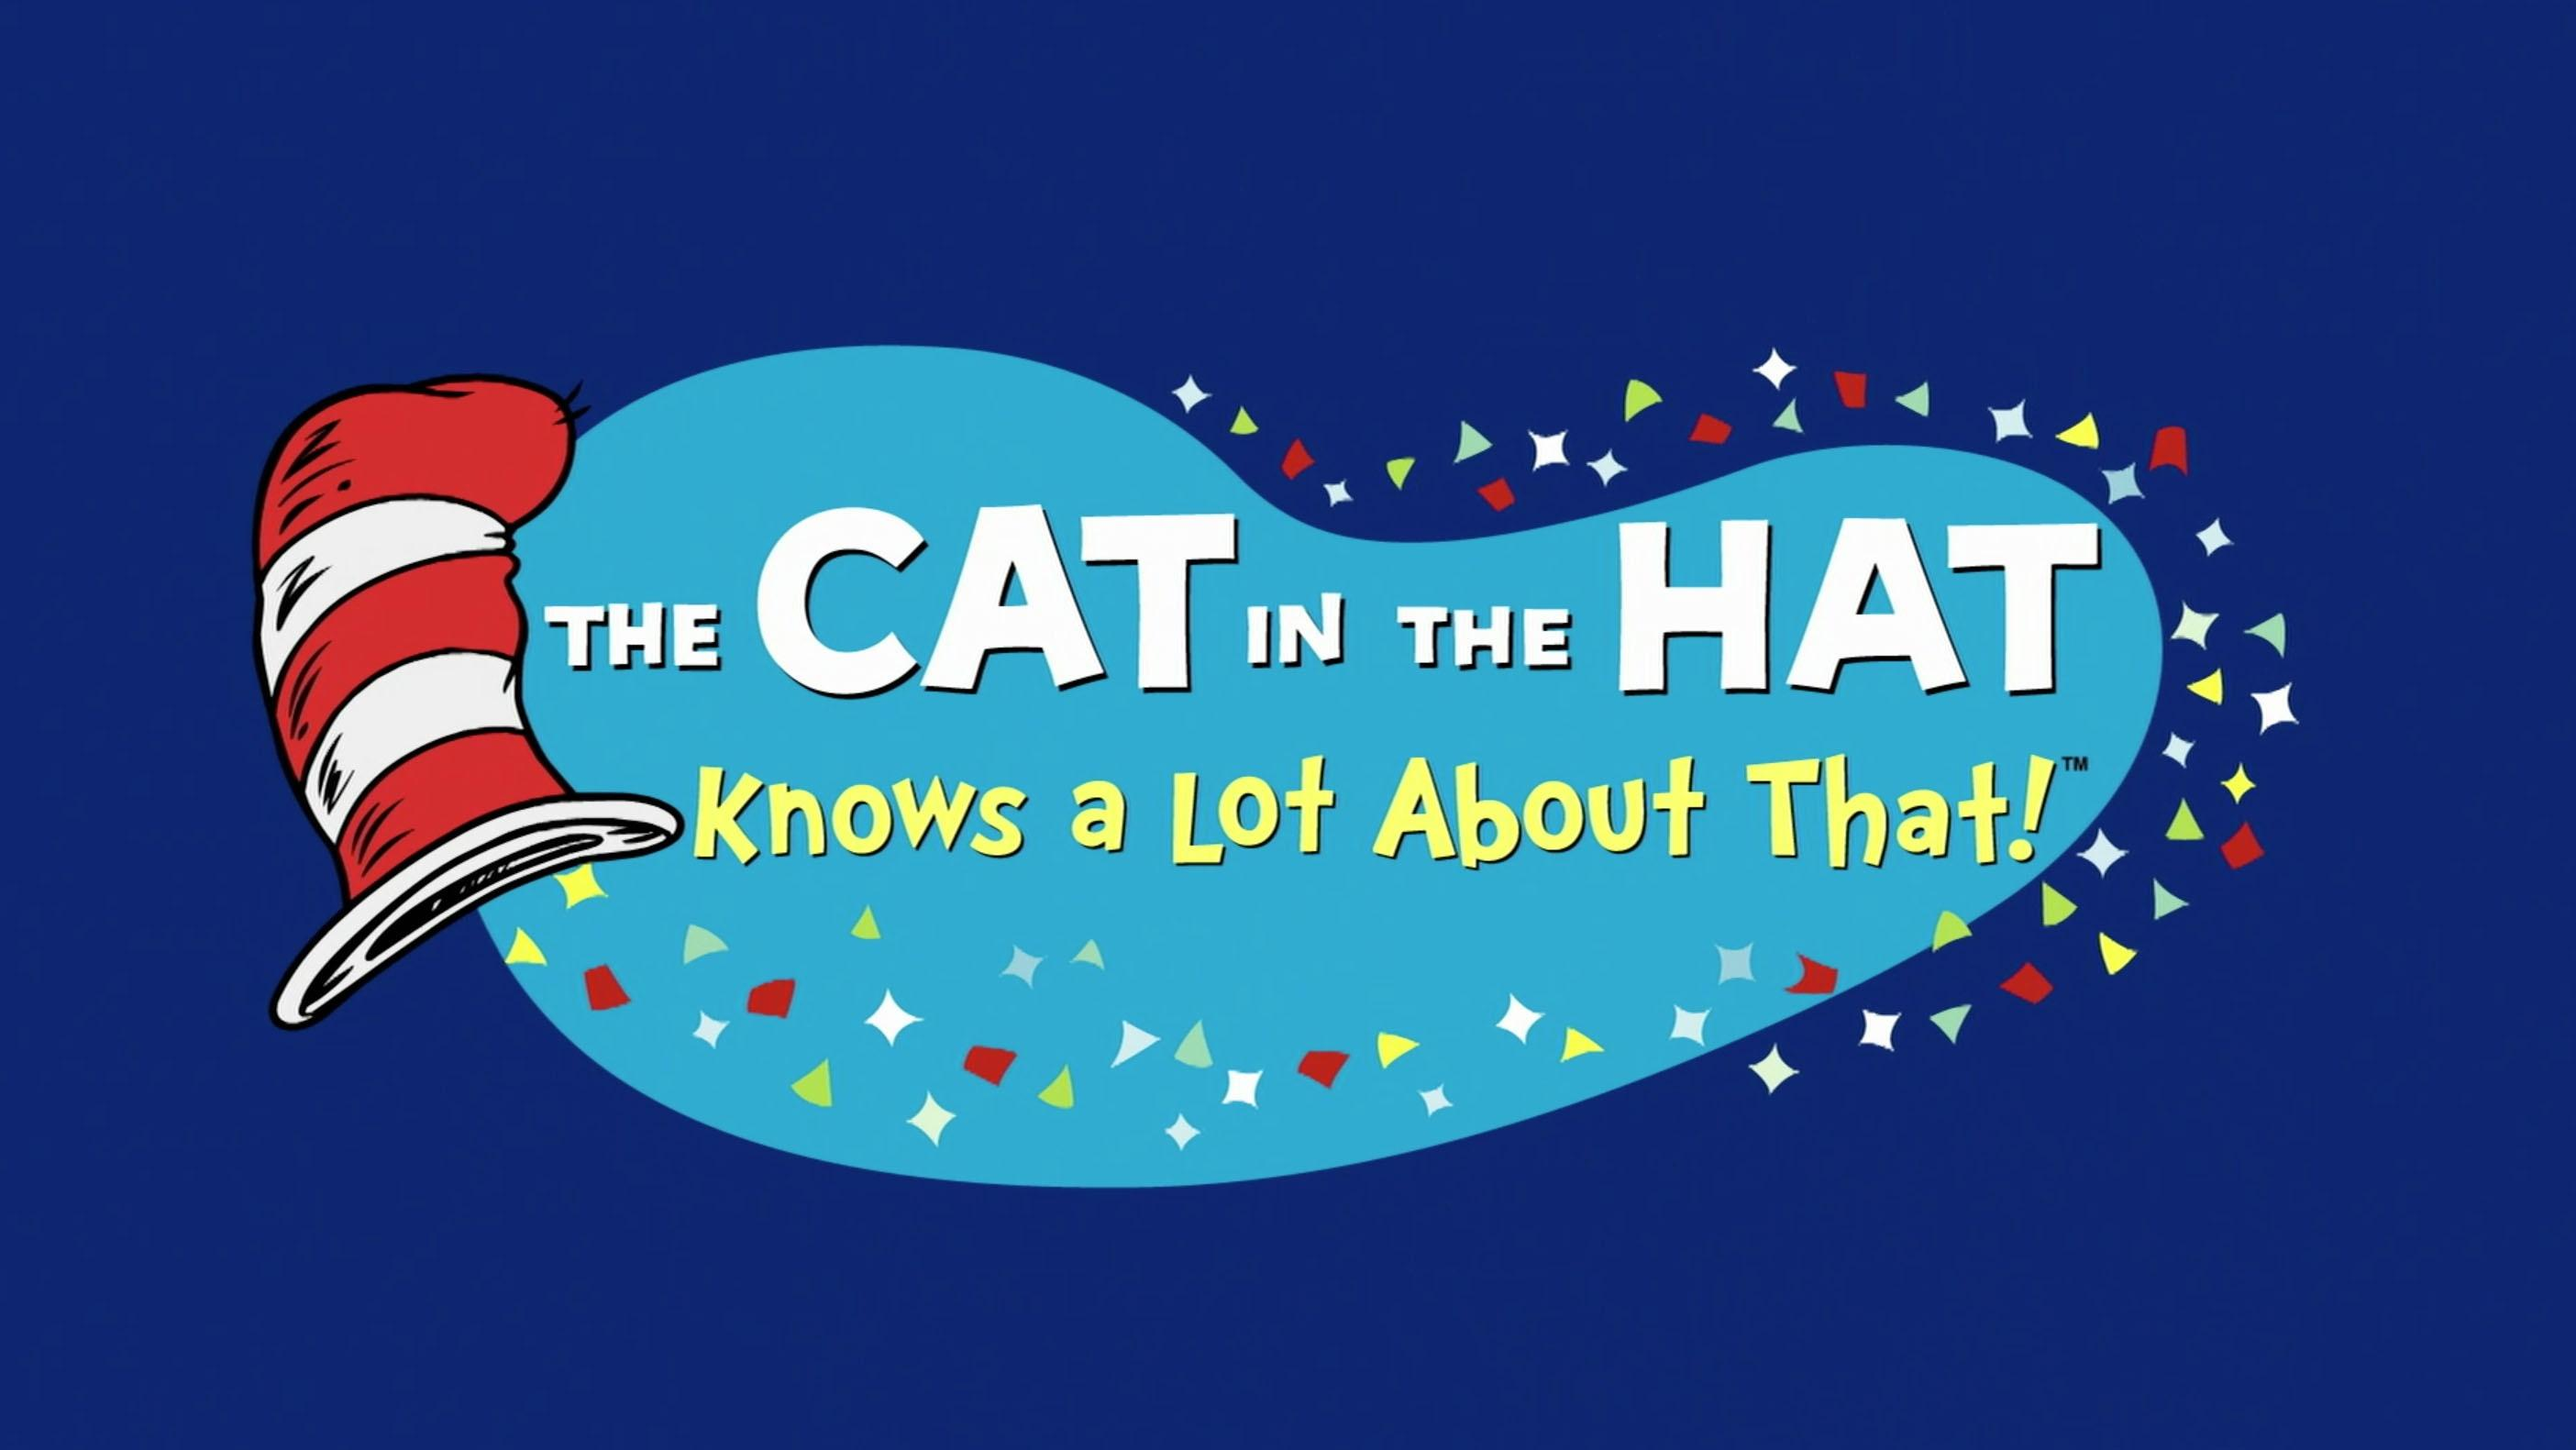 The Cat in the Hat Knows A Lot About That.